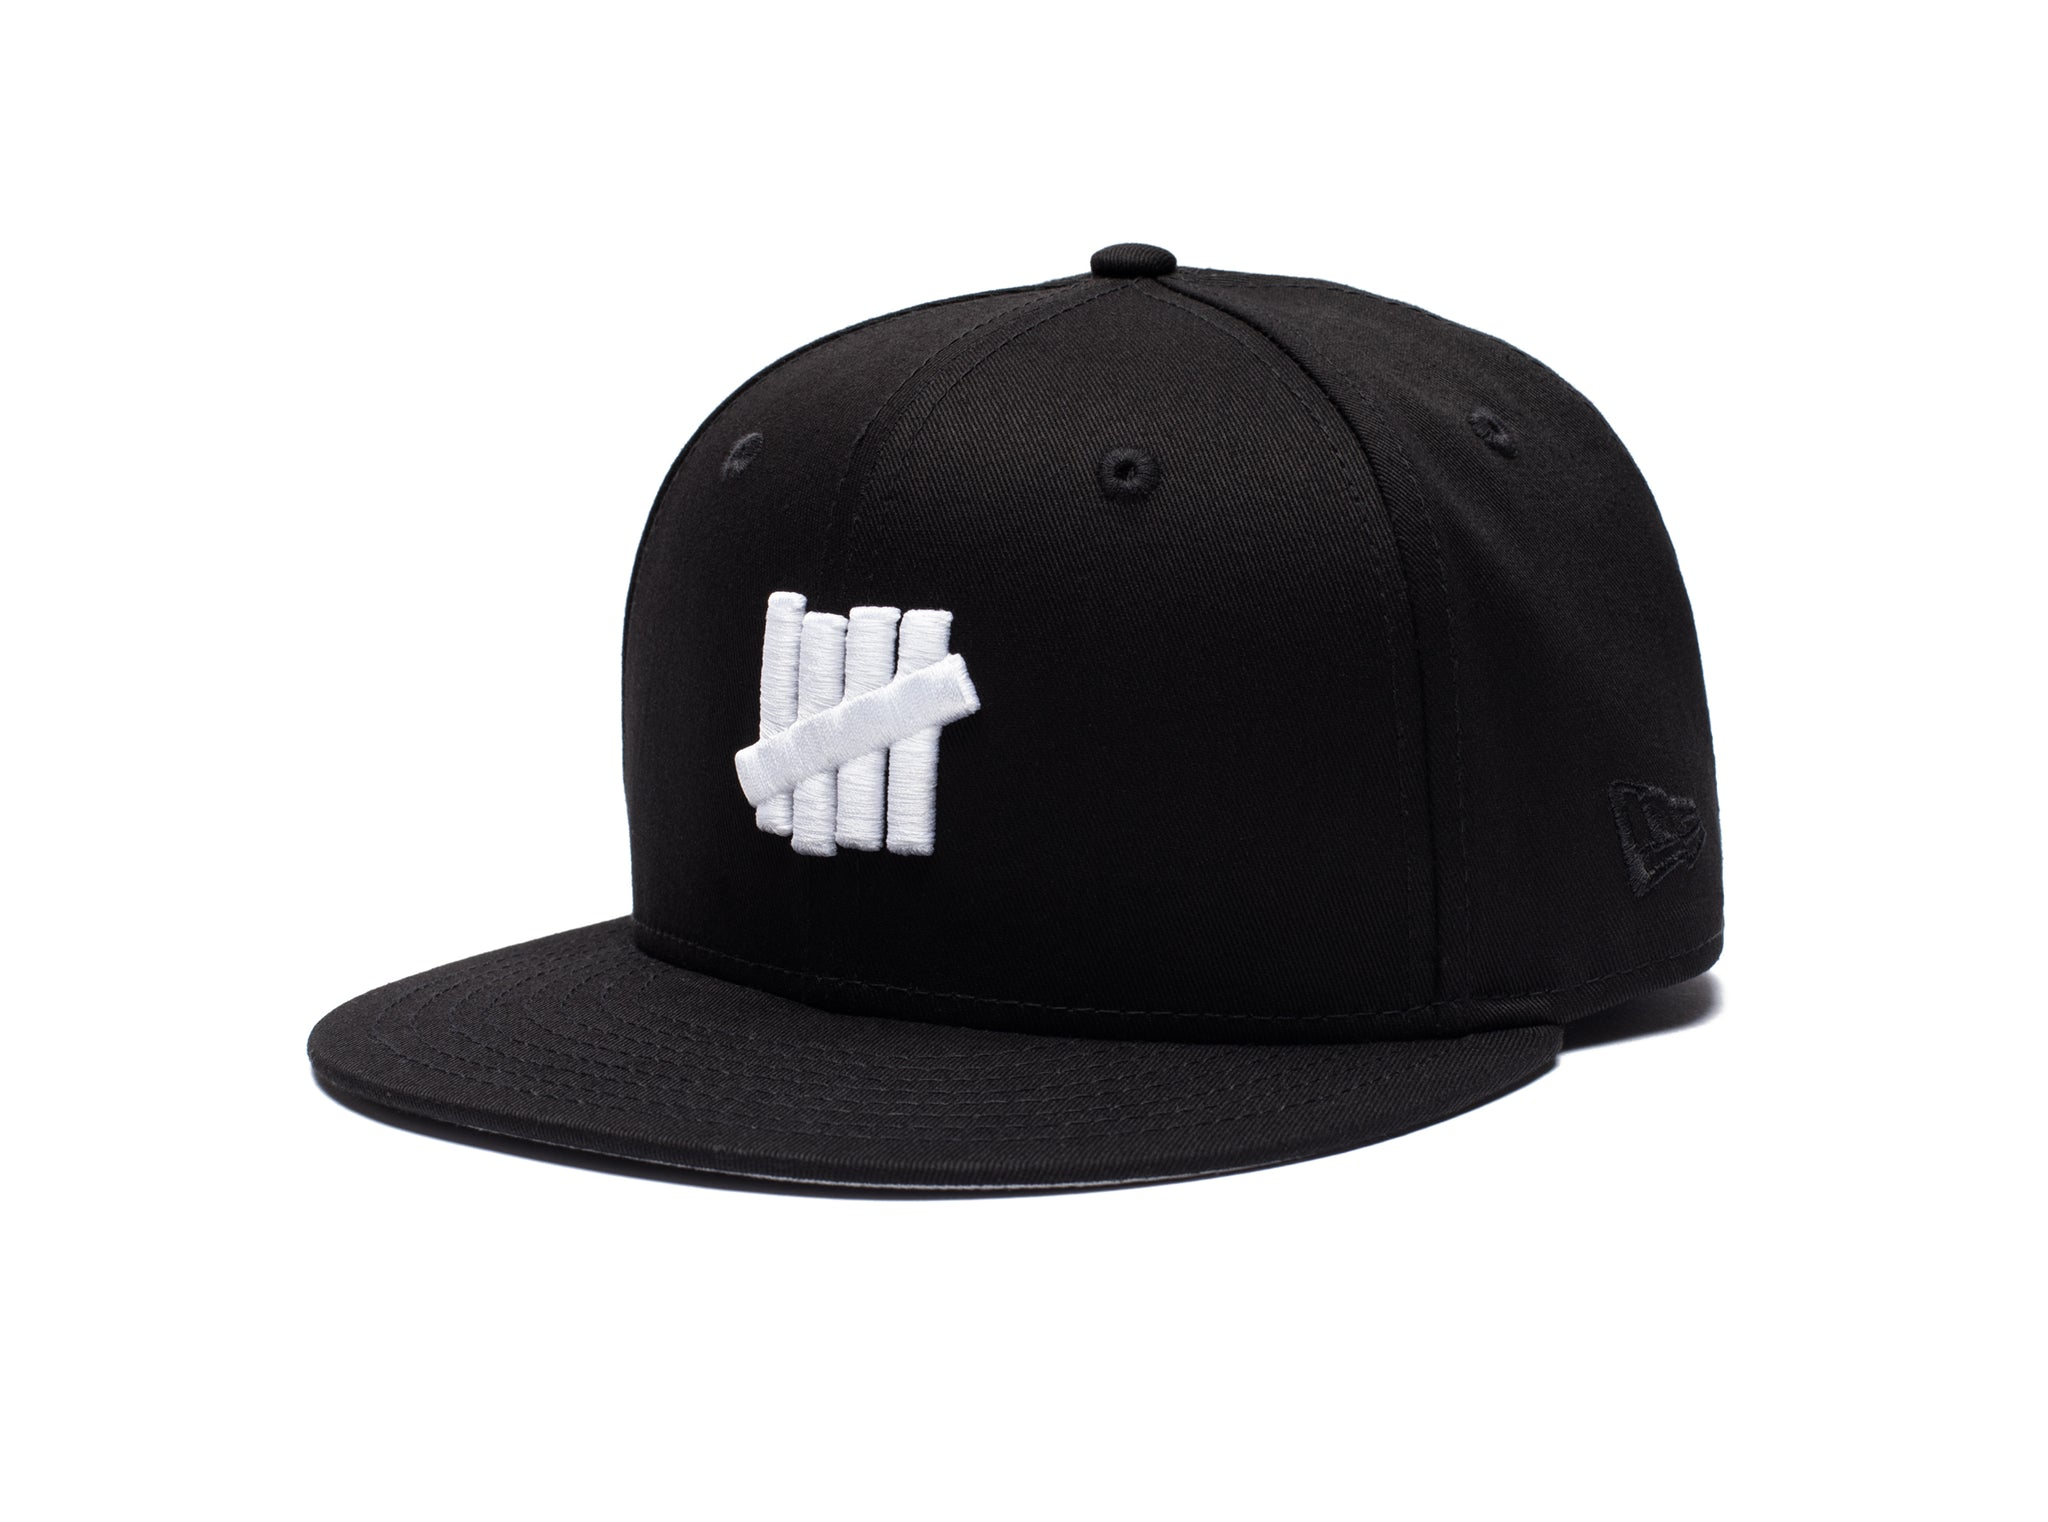 UNDEFEATED X NEW ERA ICON FITTED